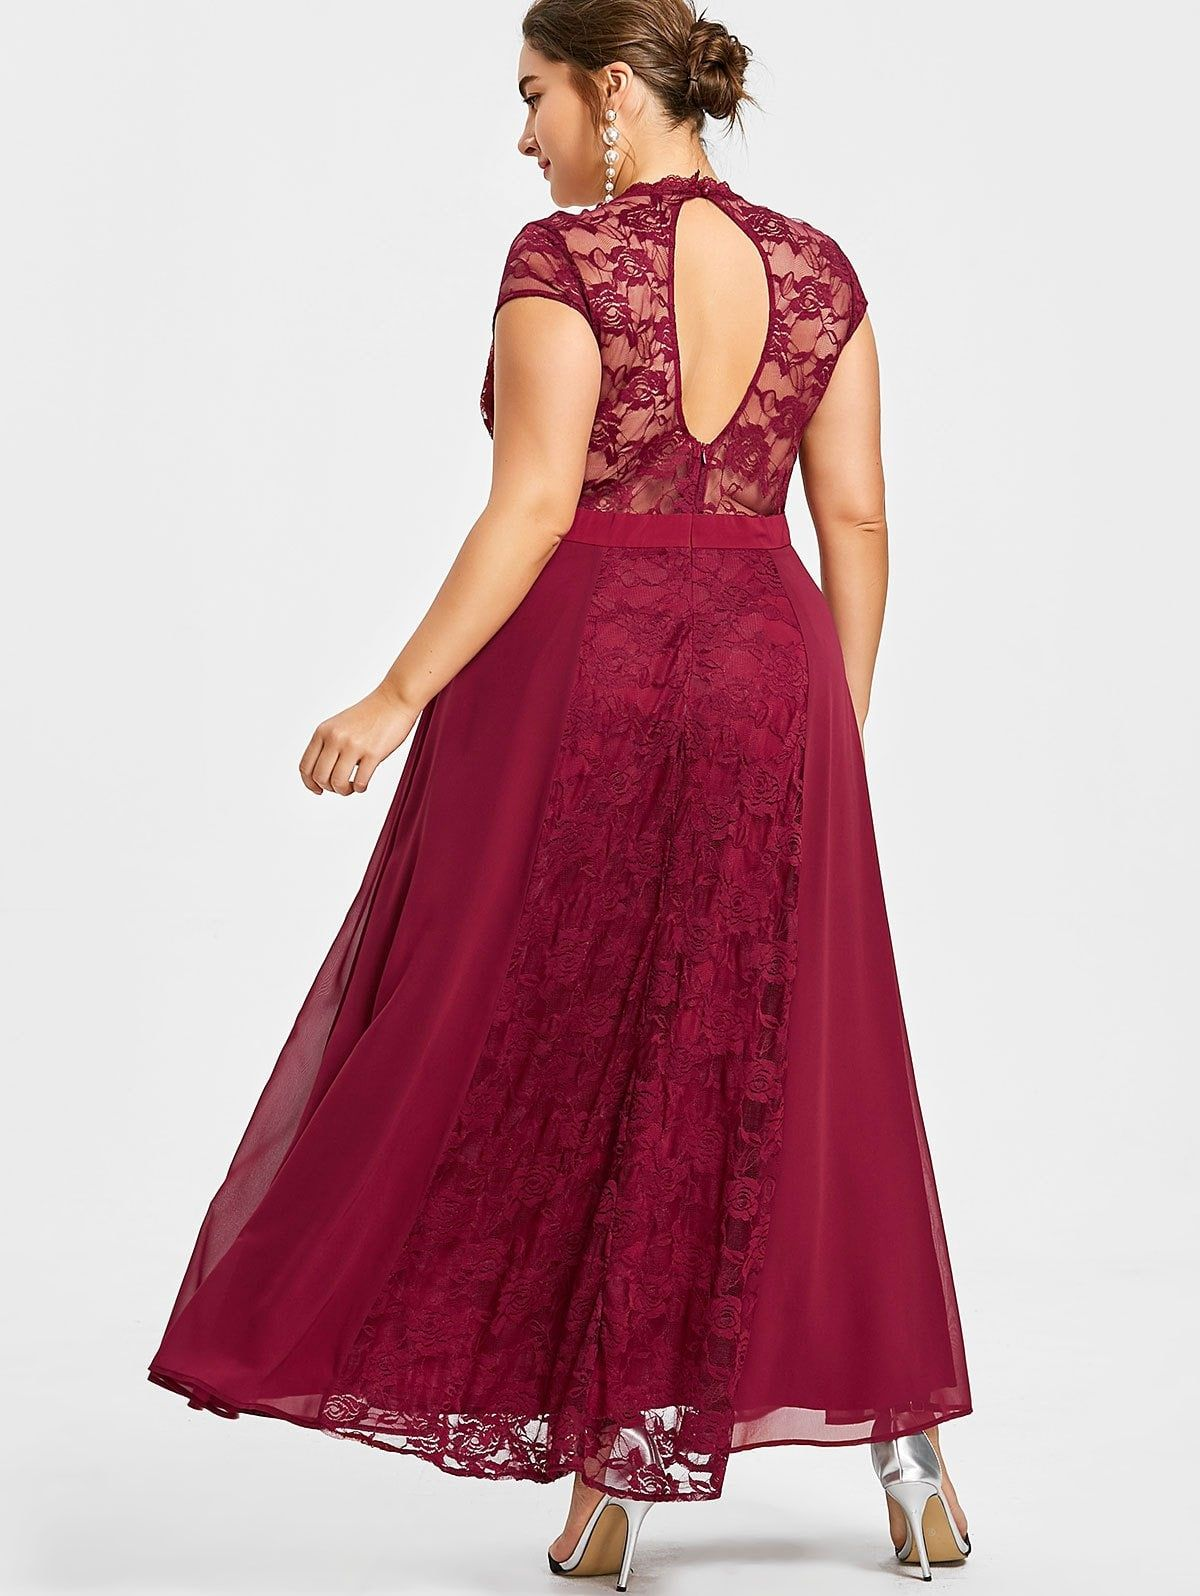 Plus size open back flowing prom dress pinterest red wines and prom